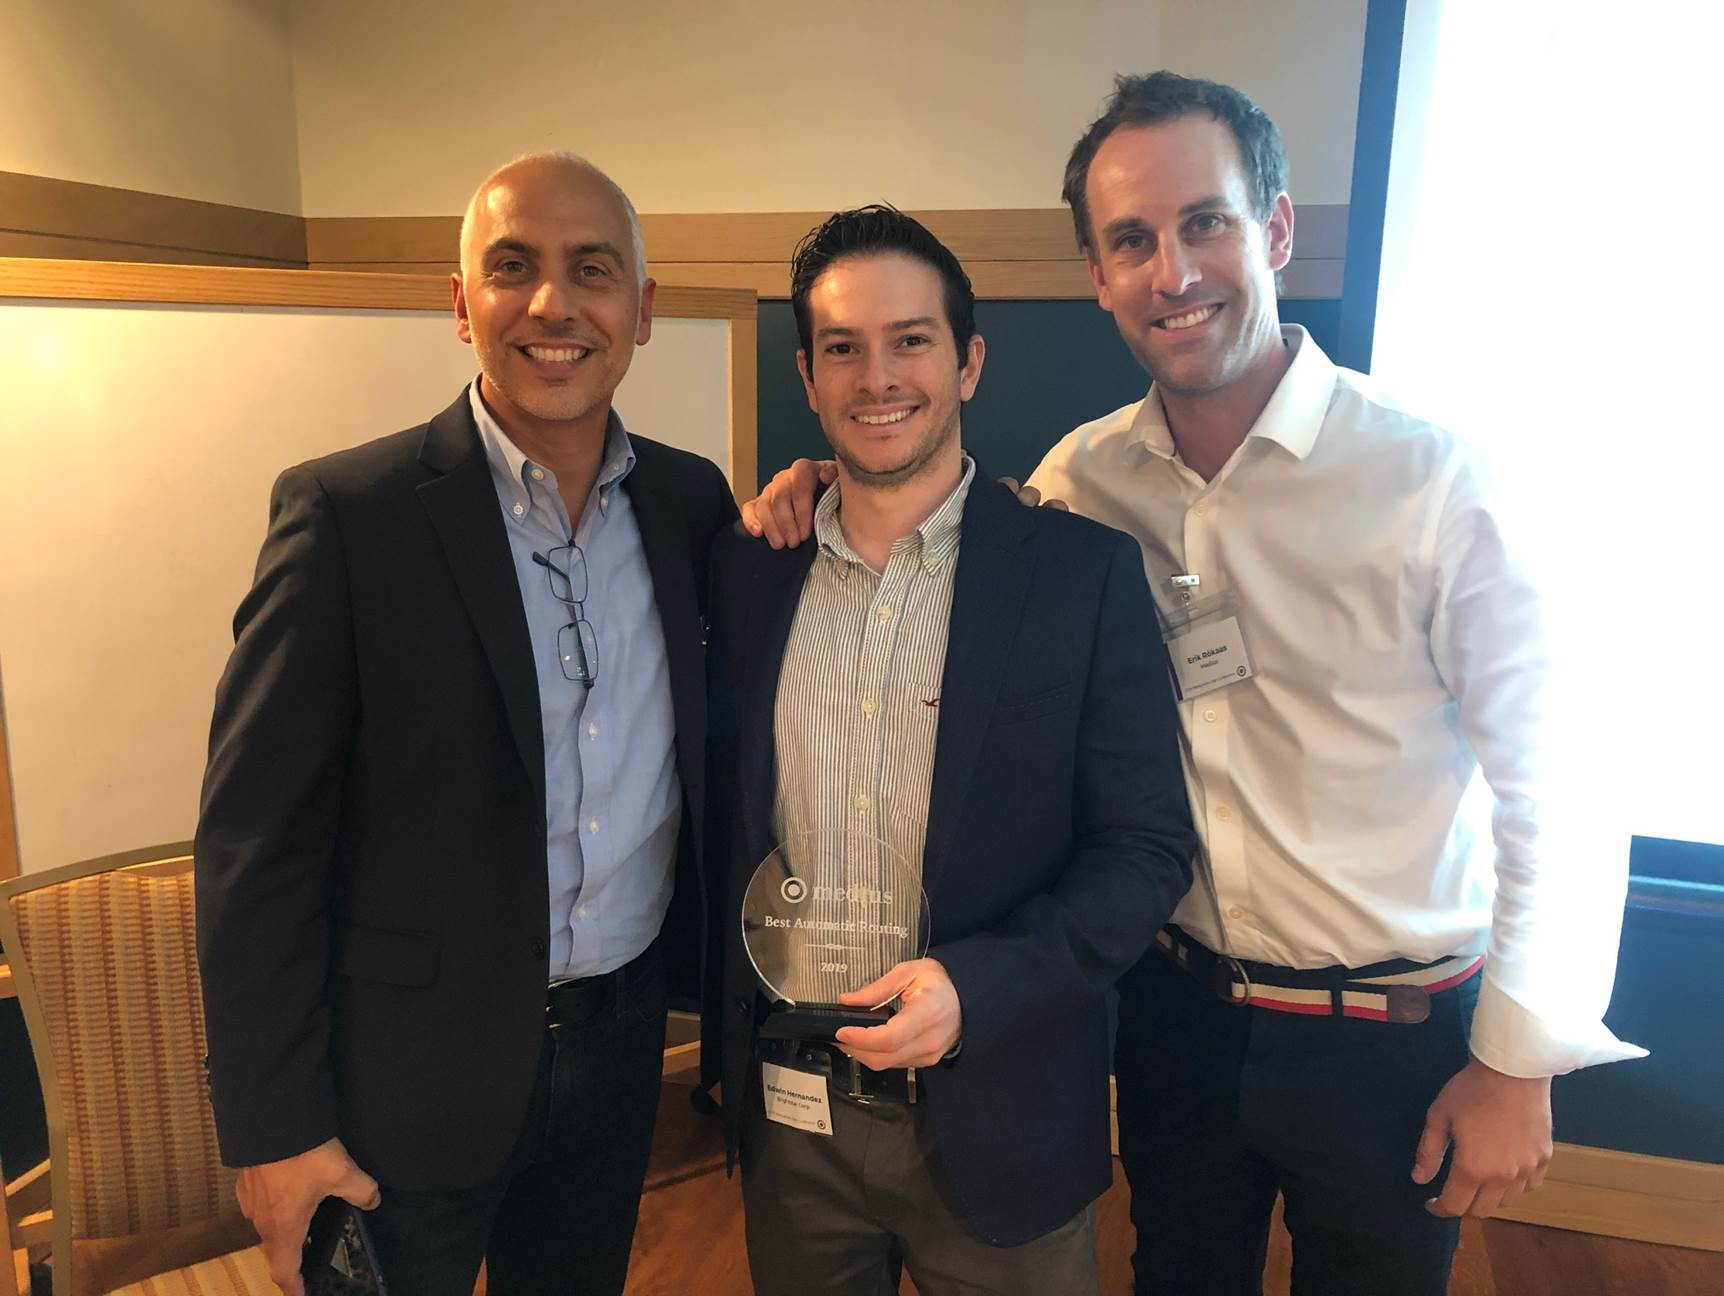 brightstar mediusflow excellence award 2019